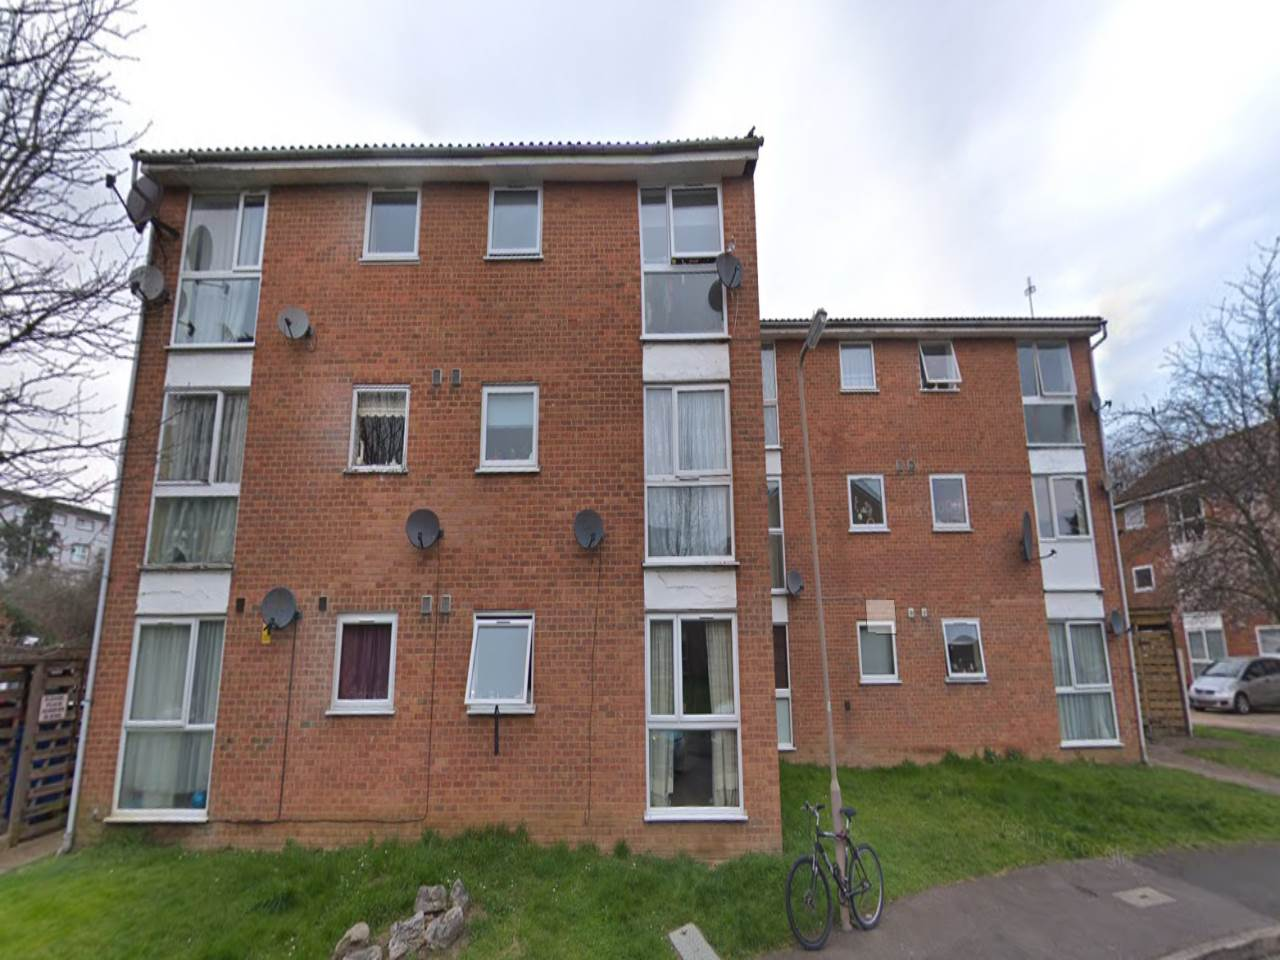 2 bed flat to rent in Trotwood, Chigwell, IG7